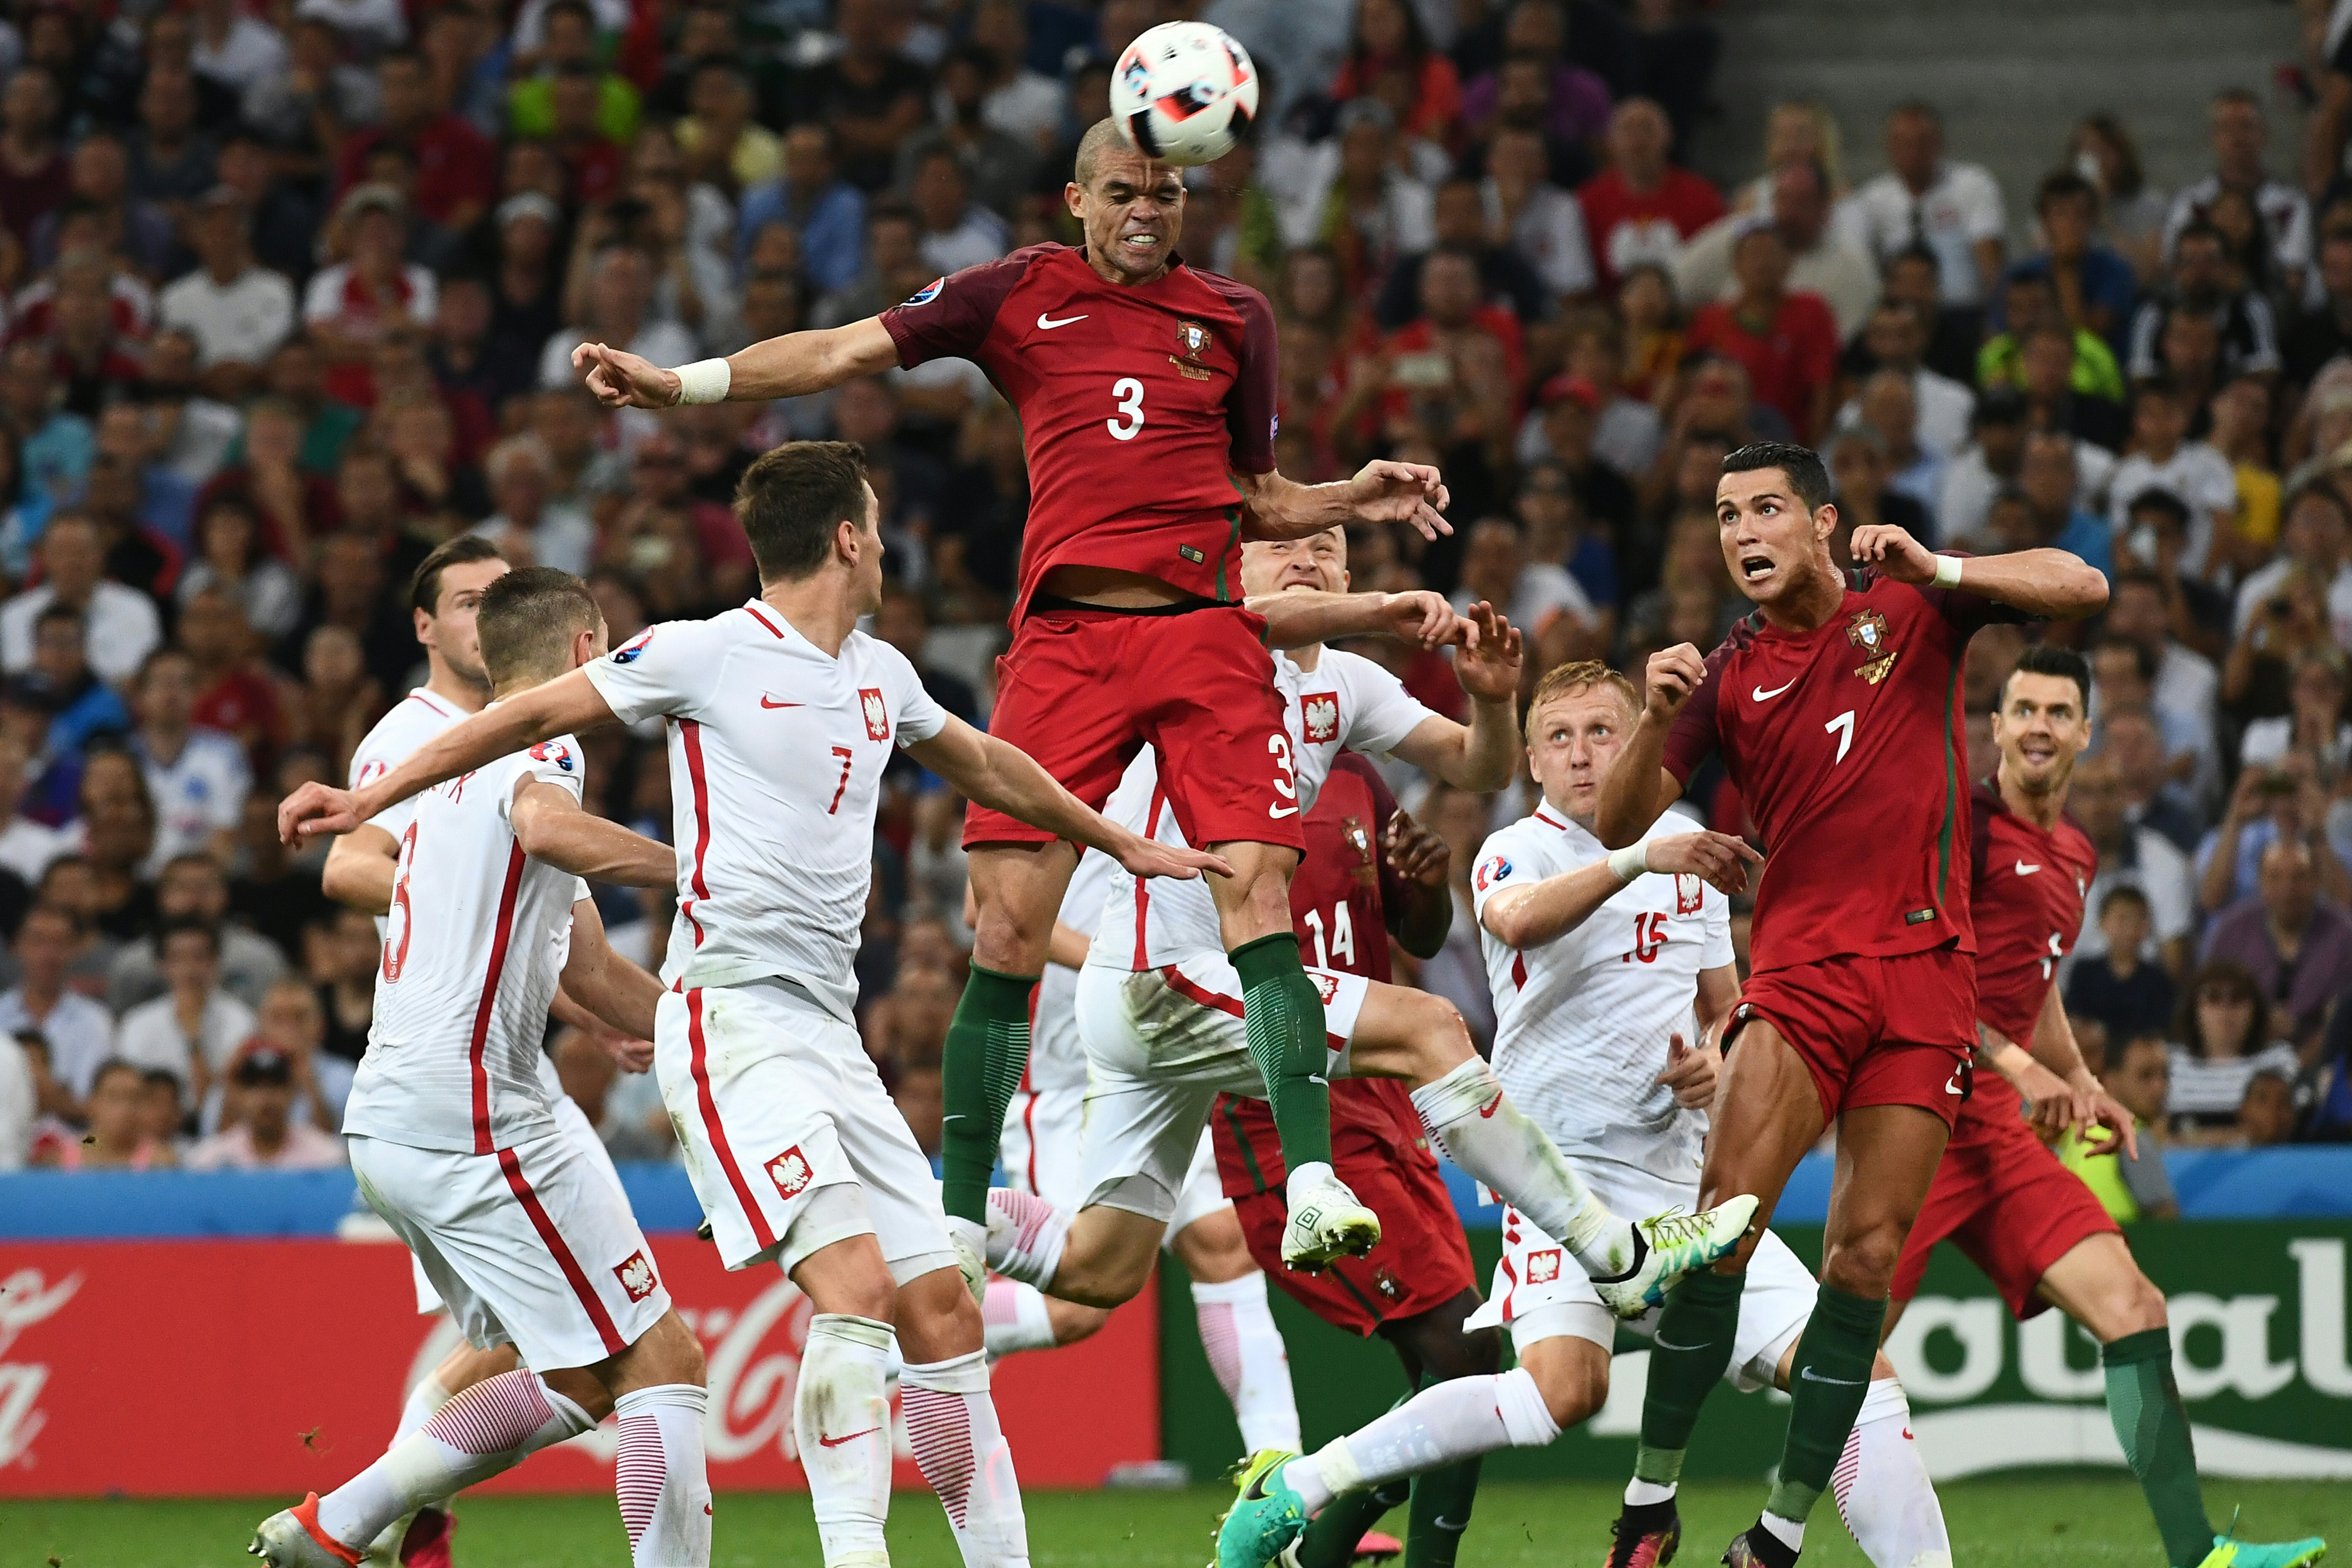 Portugal's defender Pepe (C) jumps for the ball next to Poland's forward Arkadiusz Milik (L) during the Euro 2016 quarter-final football match between Poland and Portugal at the Stade Velodrome in Marseille on June 30, 2016. / AFP PHOTO / ANNE-CHRISTINE POUJOULAT